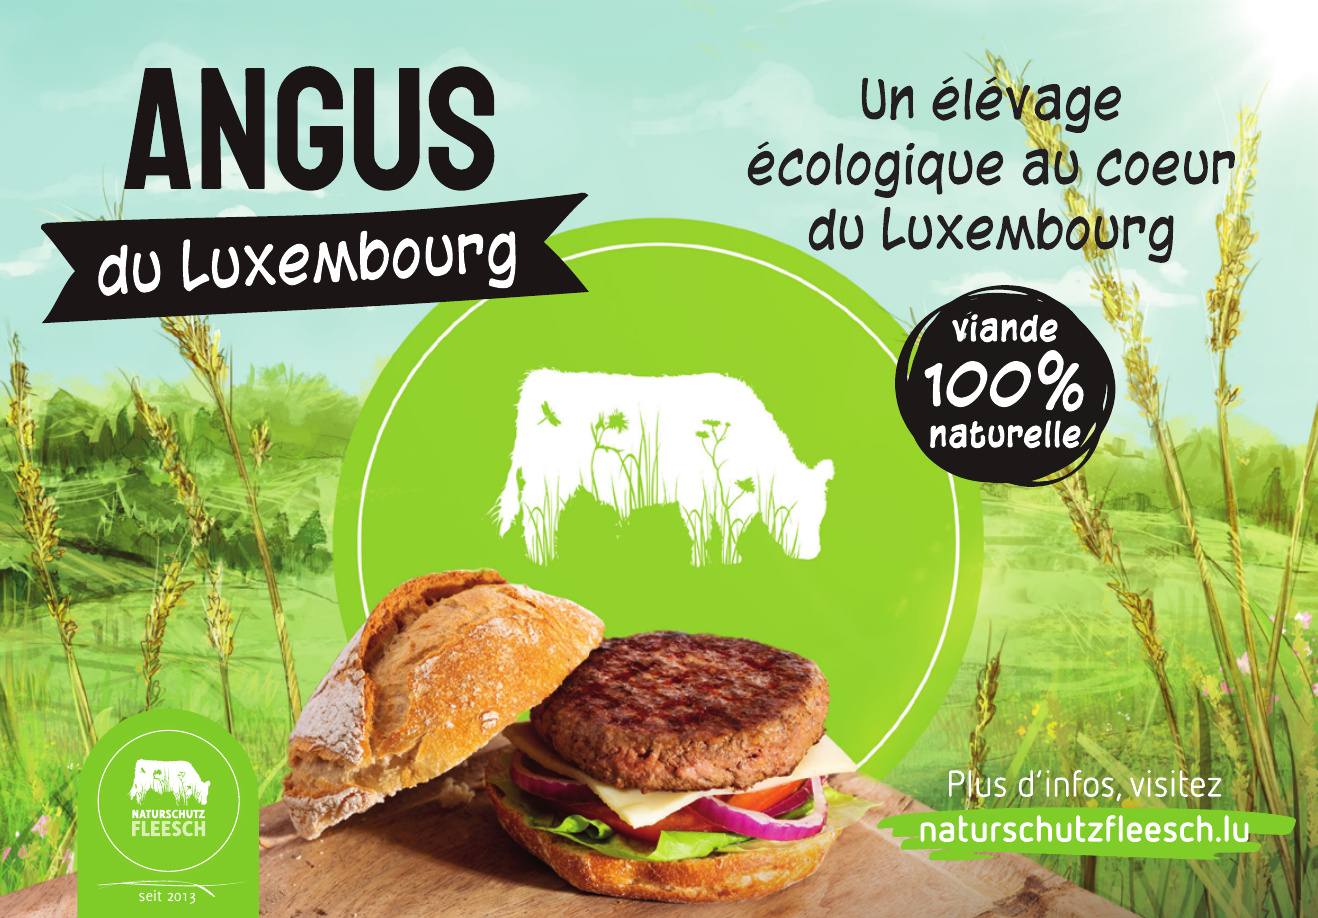 Angus du Luxembourg